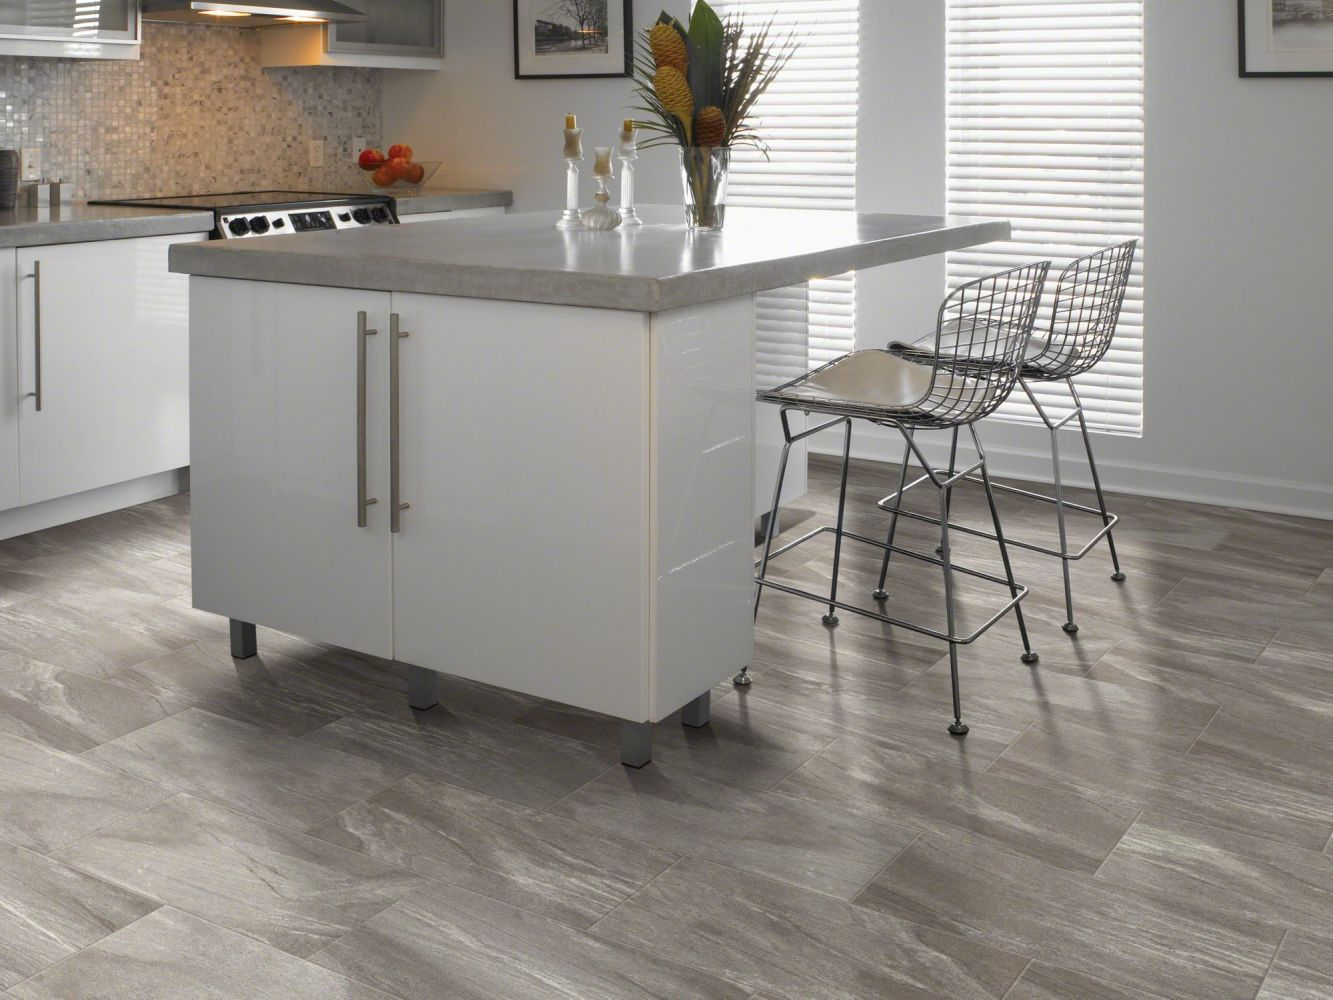 Shaw Floors Vinyl Residential Journey Tile Kingsport 00518_0494V